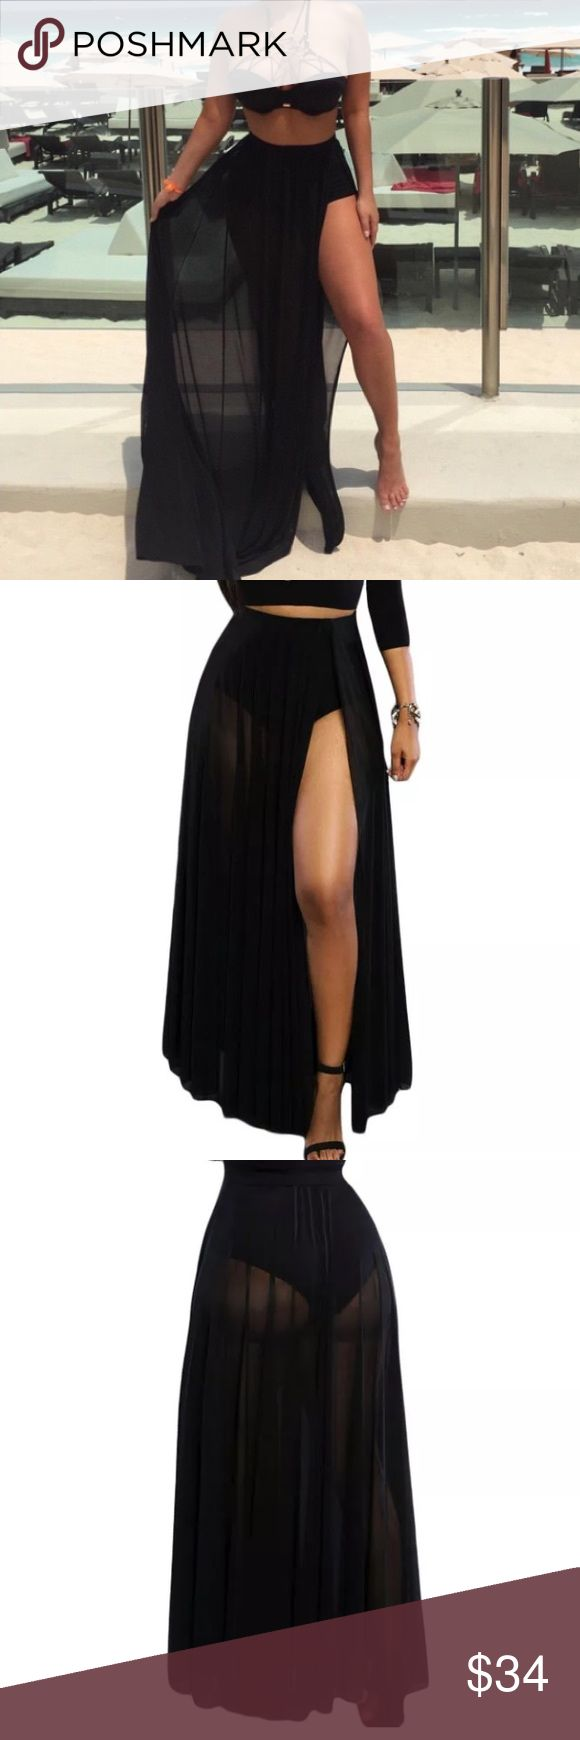 Black sheer maxi skirt Brand new boutique style maxi skirt. The slit design reveals just enough leg while silky fluid fabric gives it a glamorous, on-trend finish . Has elastic waistband, sheer overlay with front slit and high-waist panties attached in one piece. Perfect for those summer vacations. Skirts Maxi